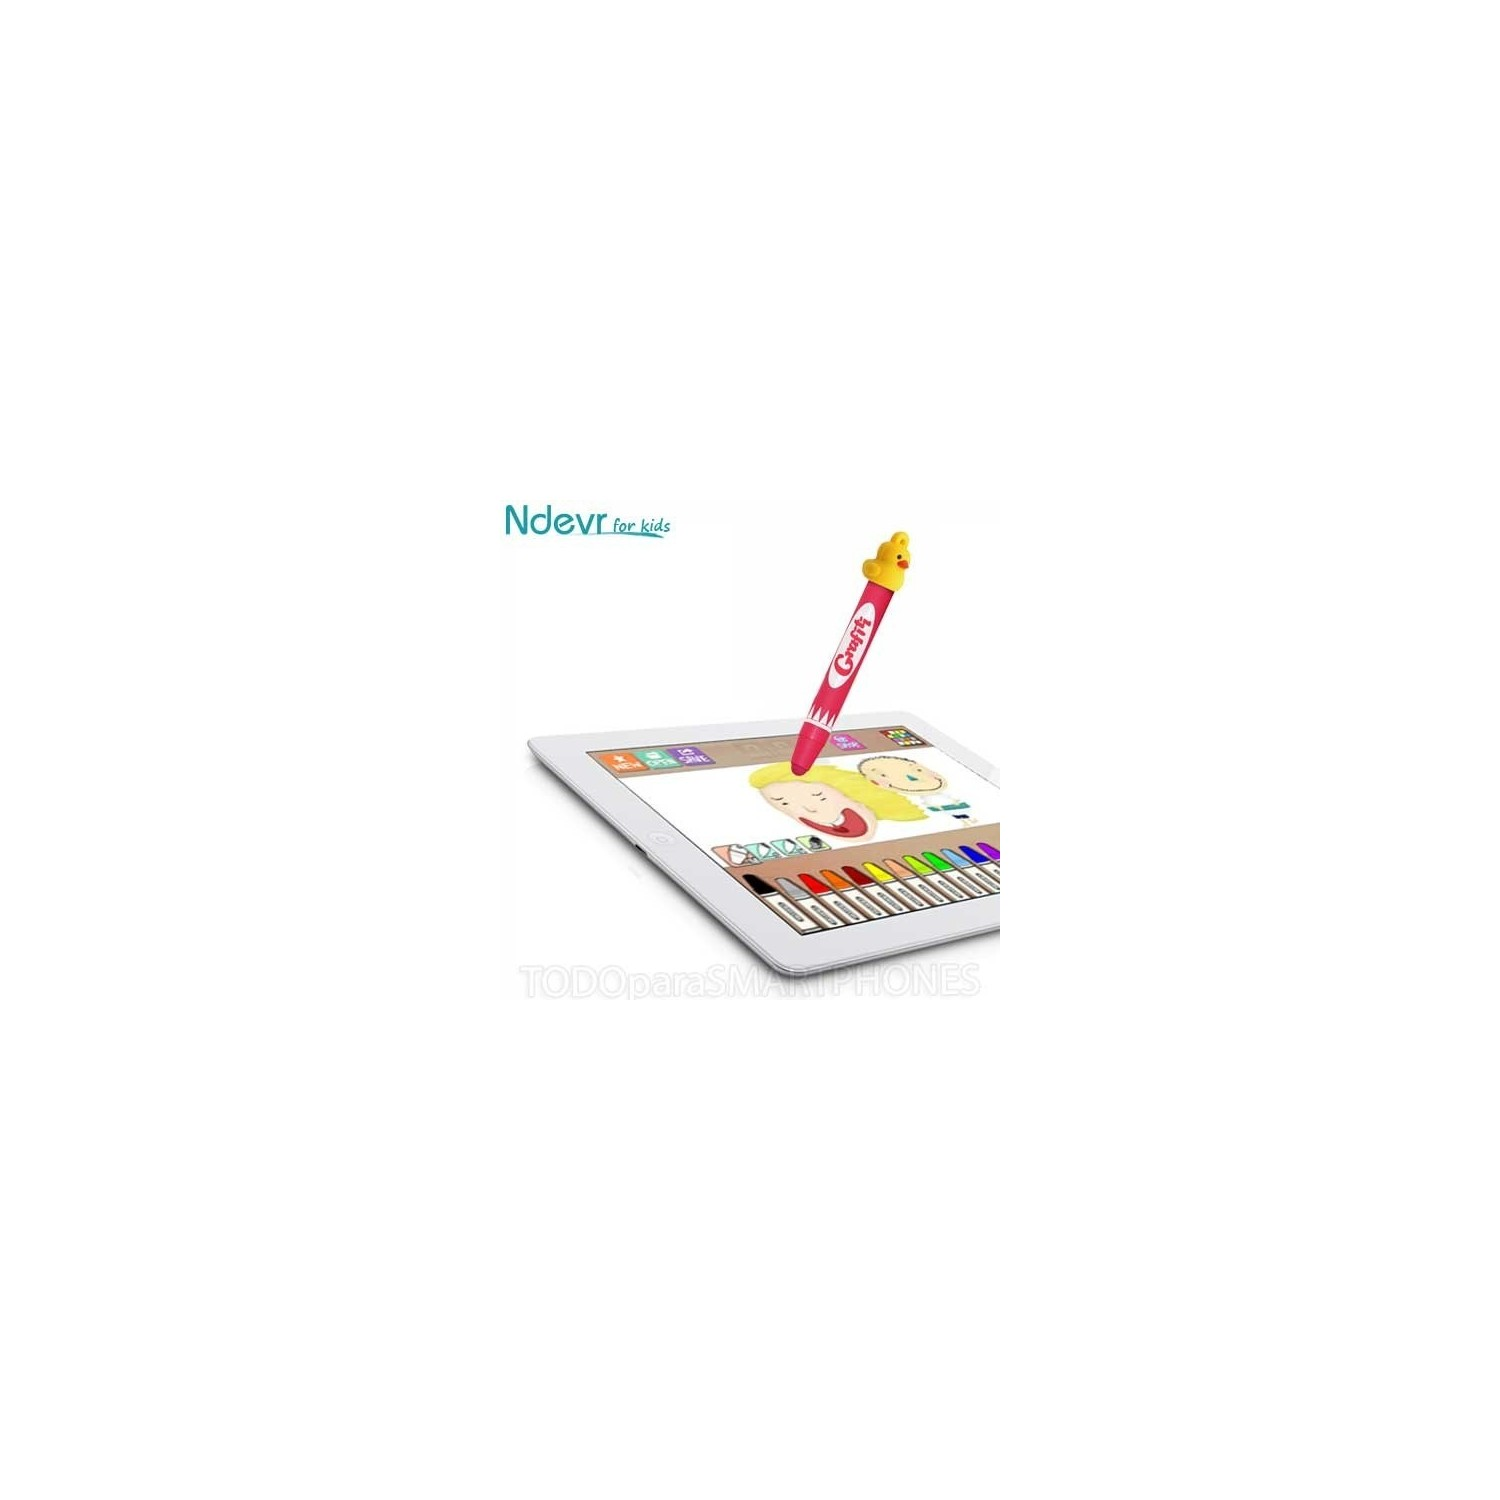 Stylus - Ndevr Kids Universal Pen for Tablets - RED